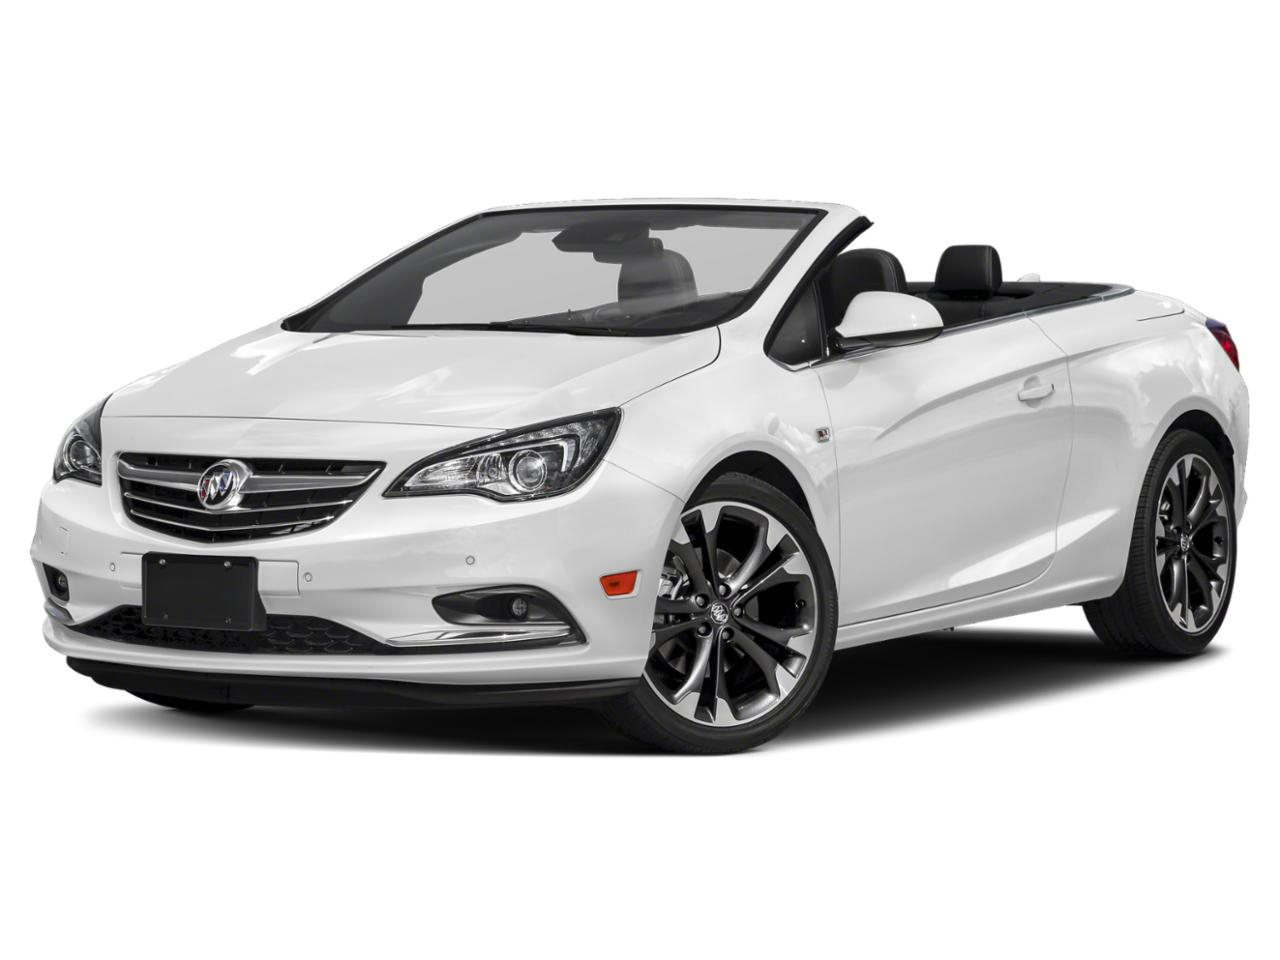 Learn About This 2019 Buick Cascada For Sale In Tacoma 2021 Buick Cascada Specs, Owners Manual, Accessories